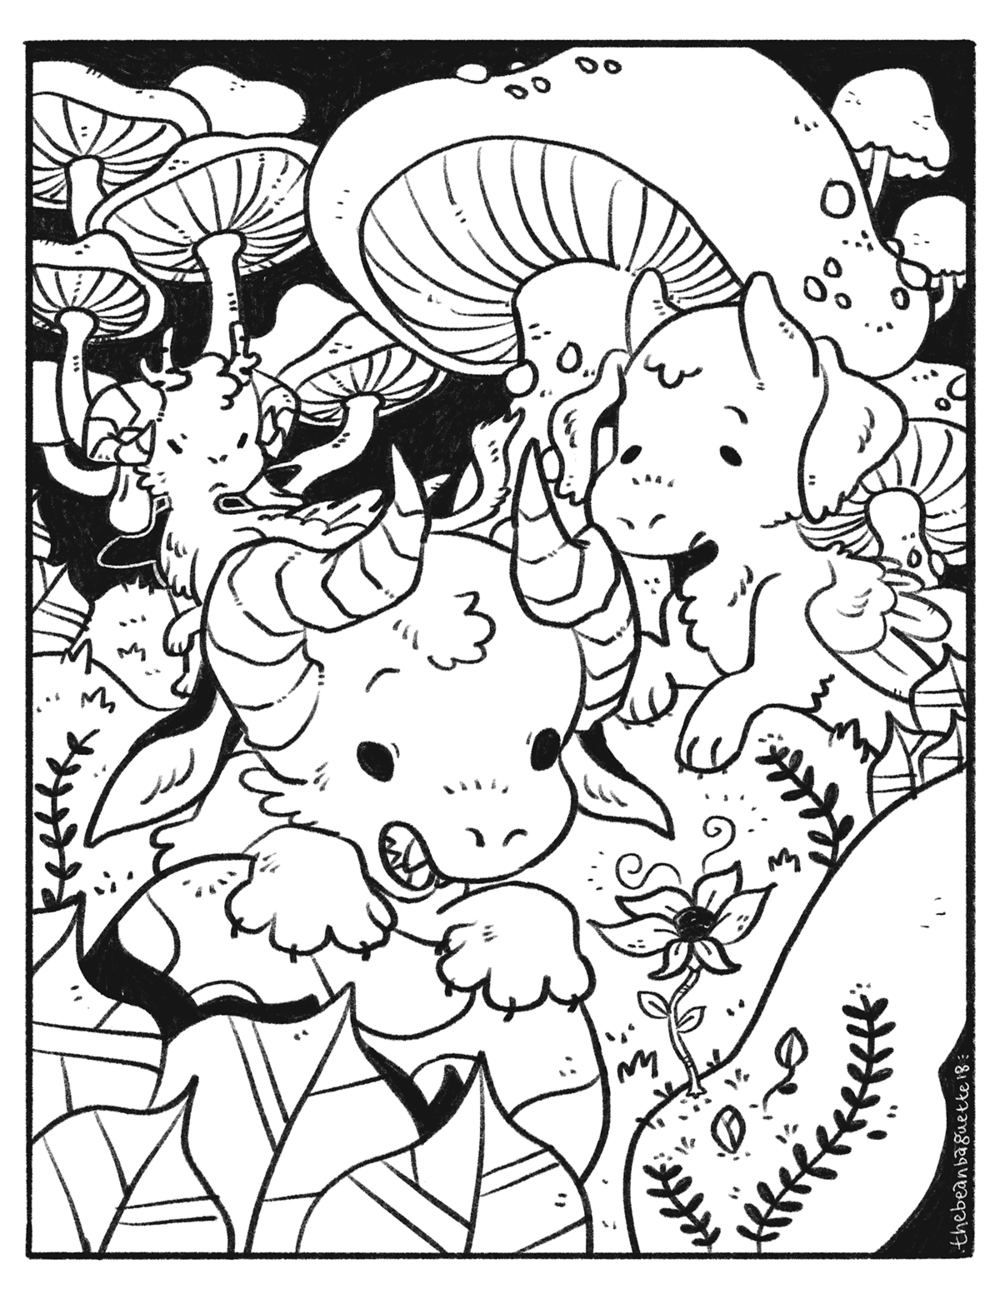 bbaguette feb2018 coloring page -- mushroom hunters.png